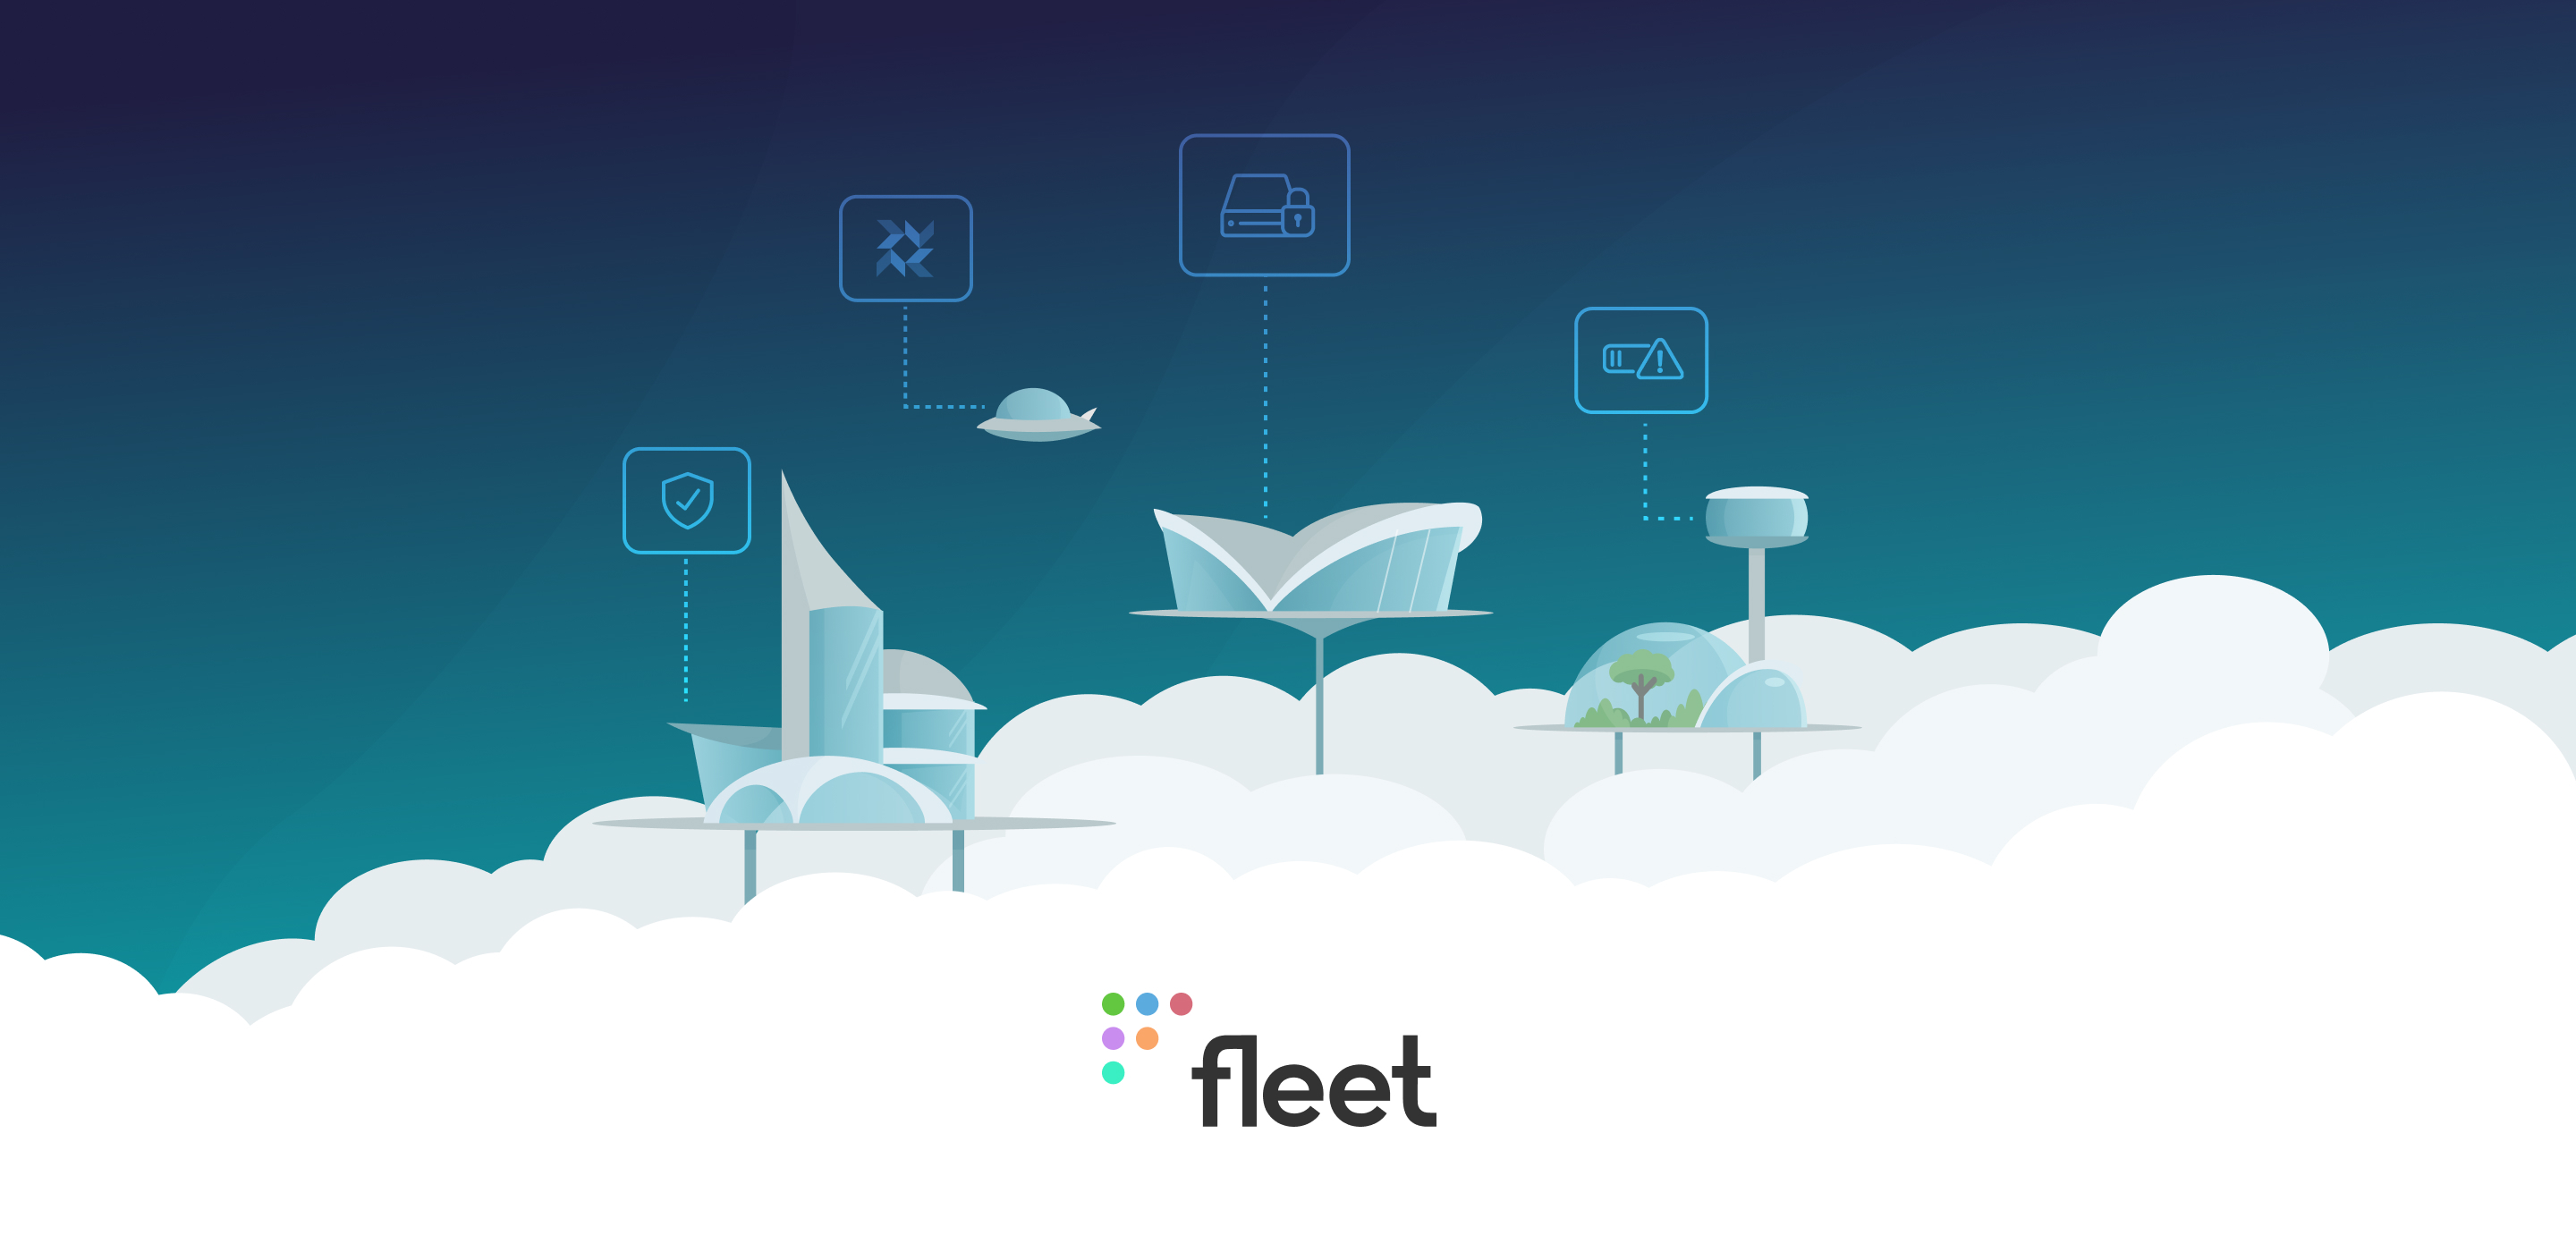 Banner featuring a futuristic cloud city with the Fleet logo